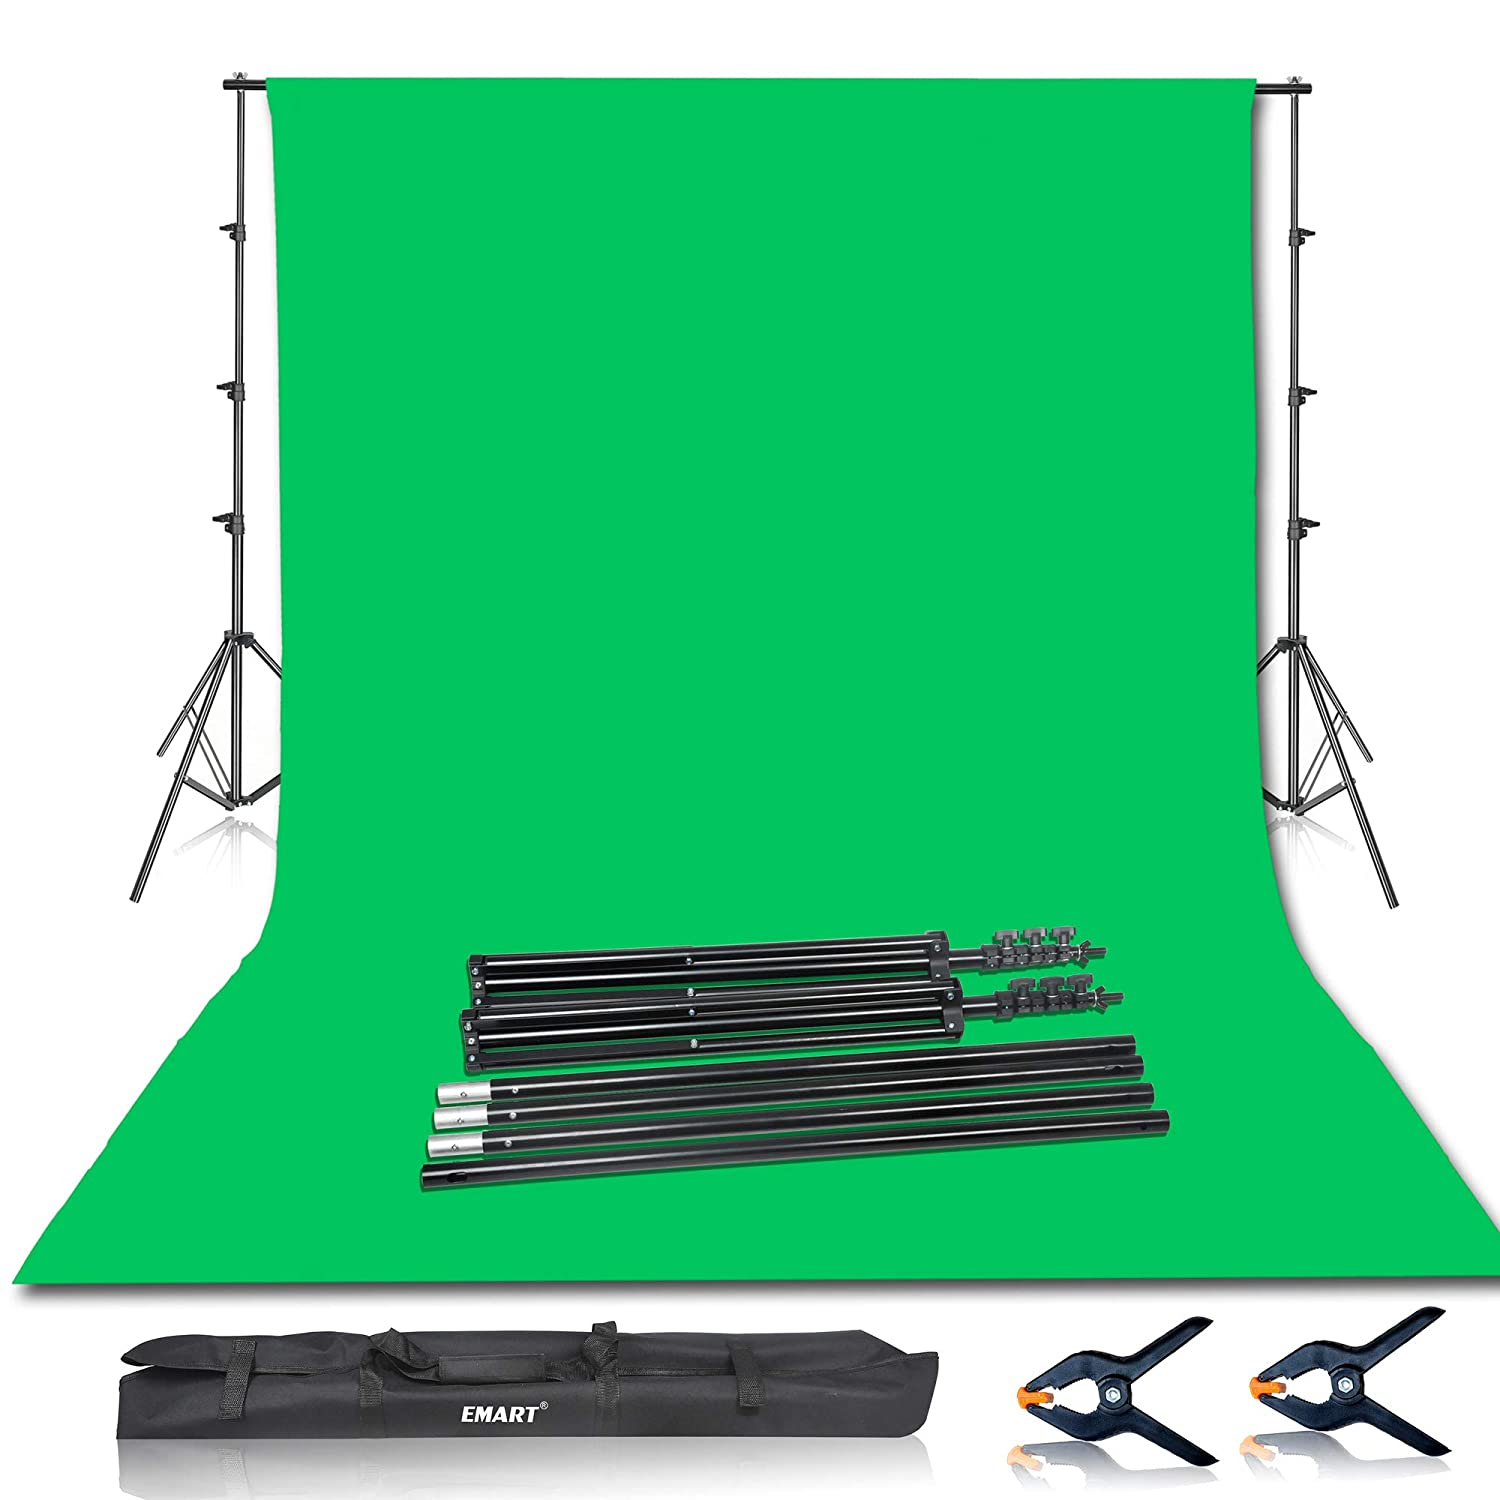 Emart Photo Video Studio 8 5 x 10ft Green Screen Backdrop Stand Kit,  Photography Background Support System with 10 x12ft 100% Cotton Muslin  Chromakey